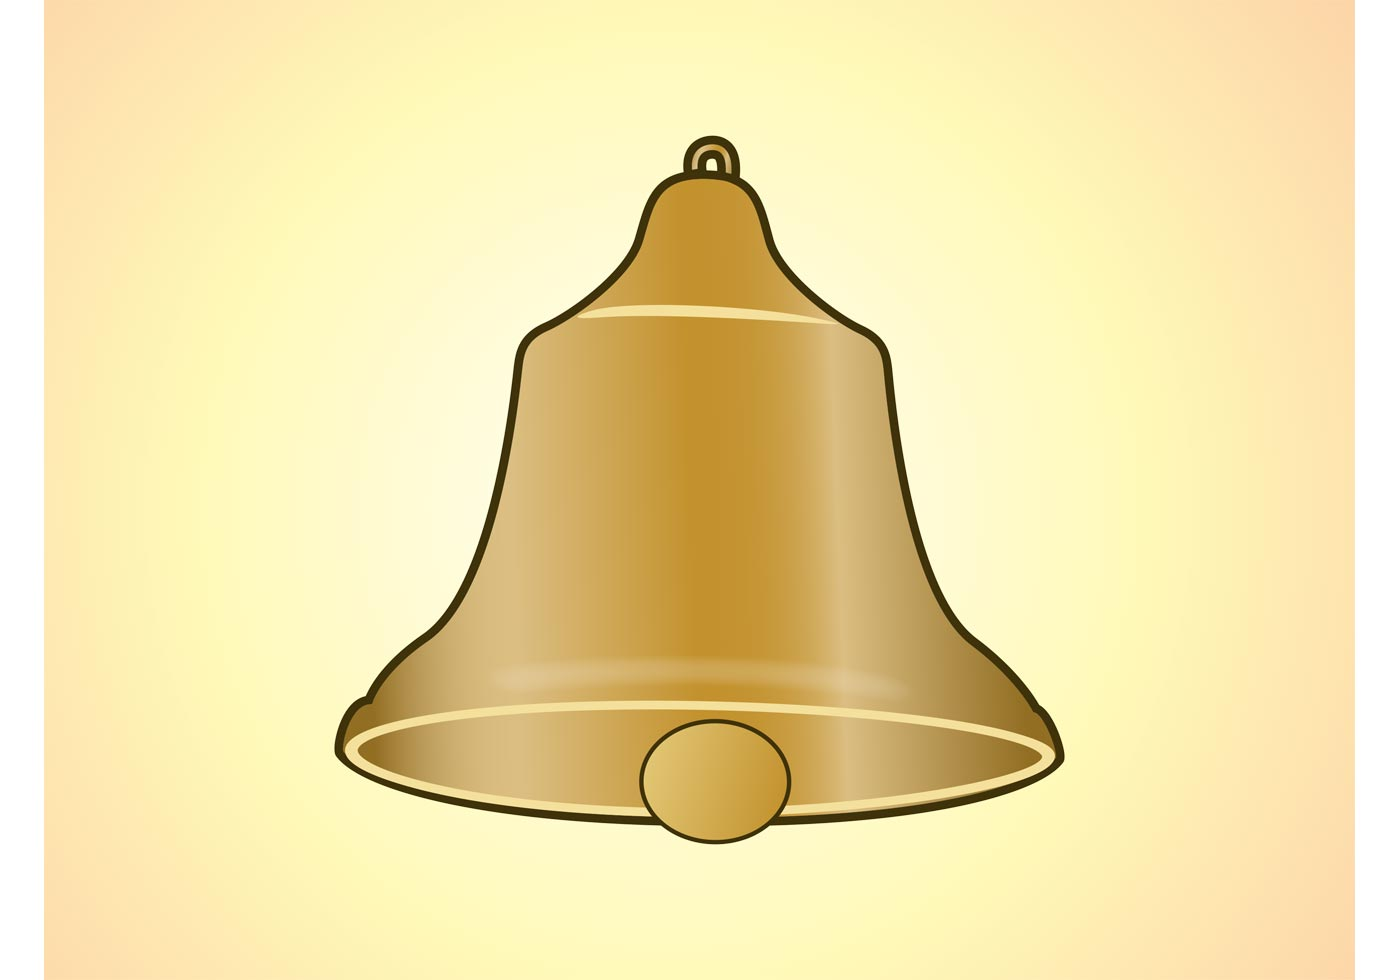 Golden Bell Vector Download Free Vector Art Stock